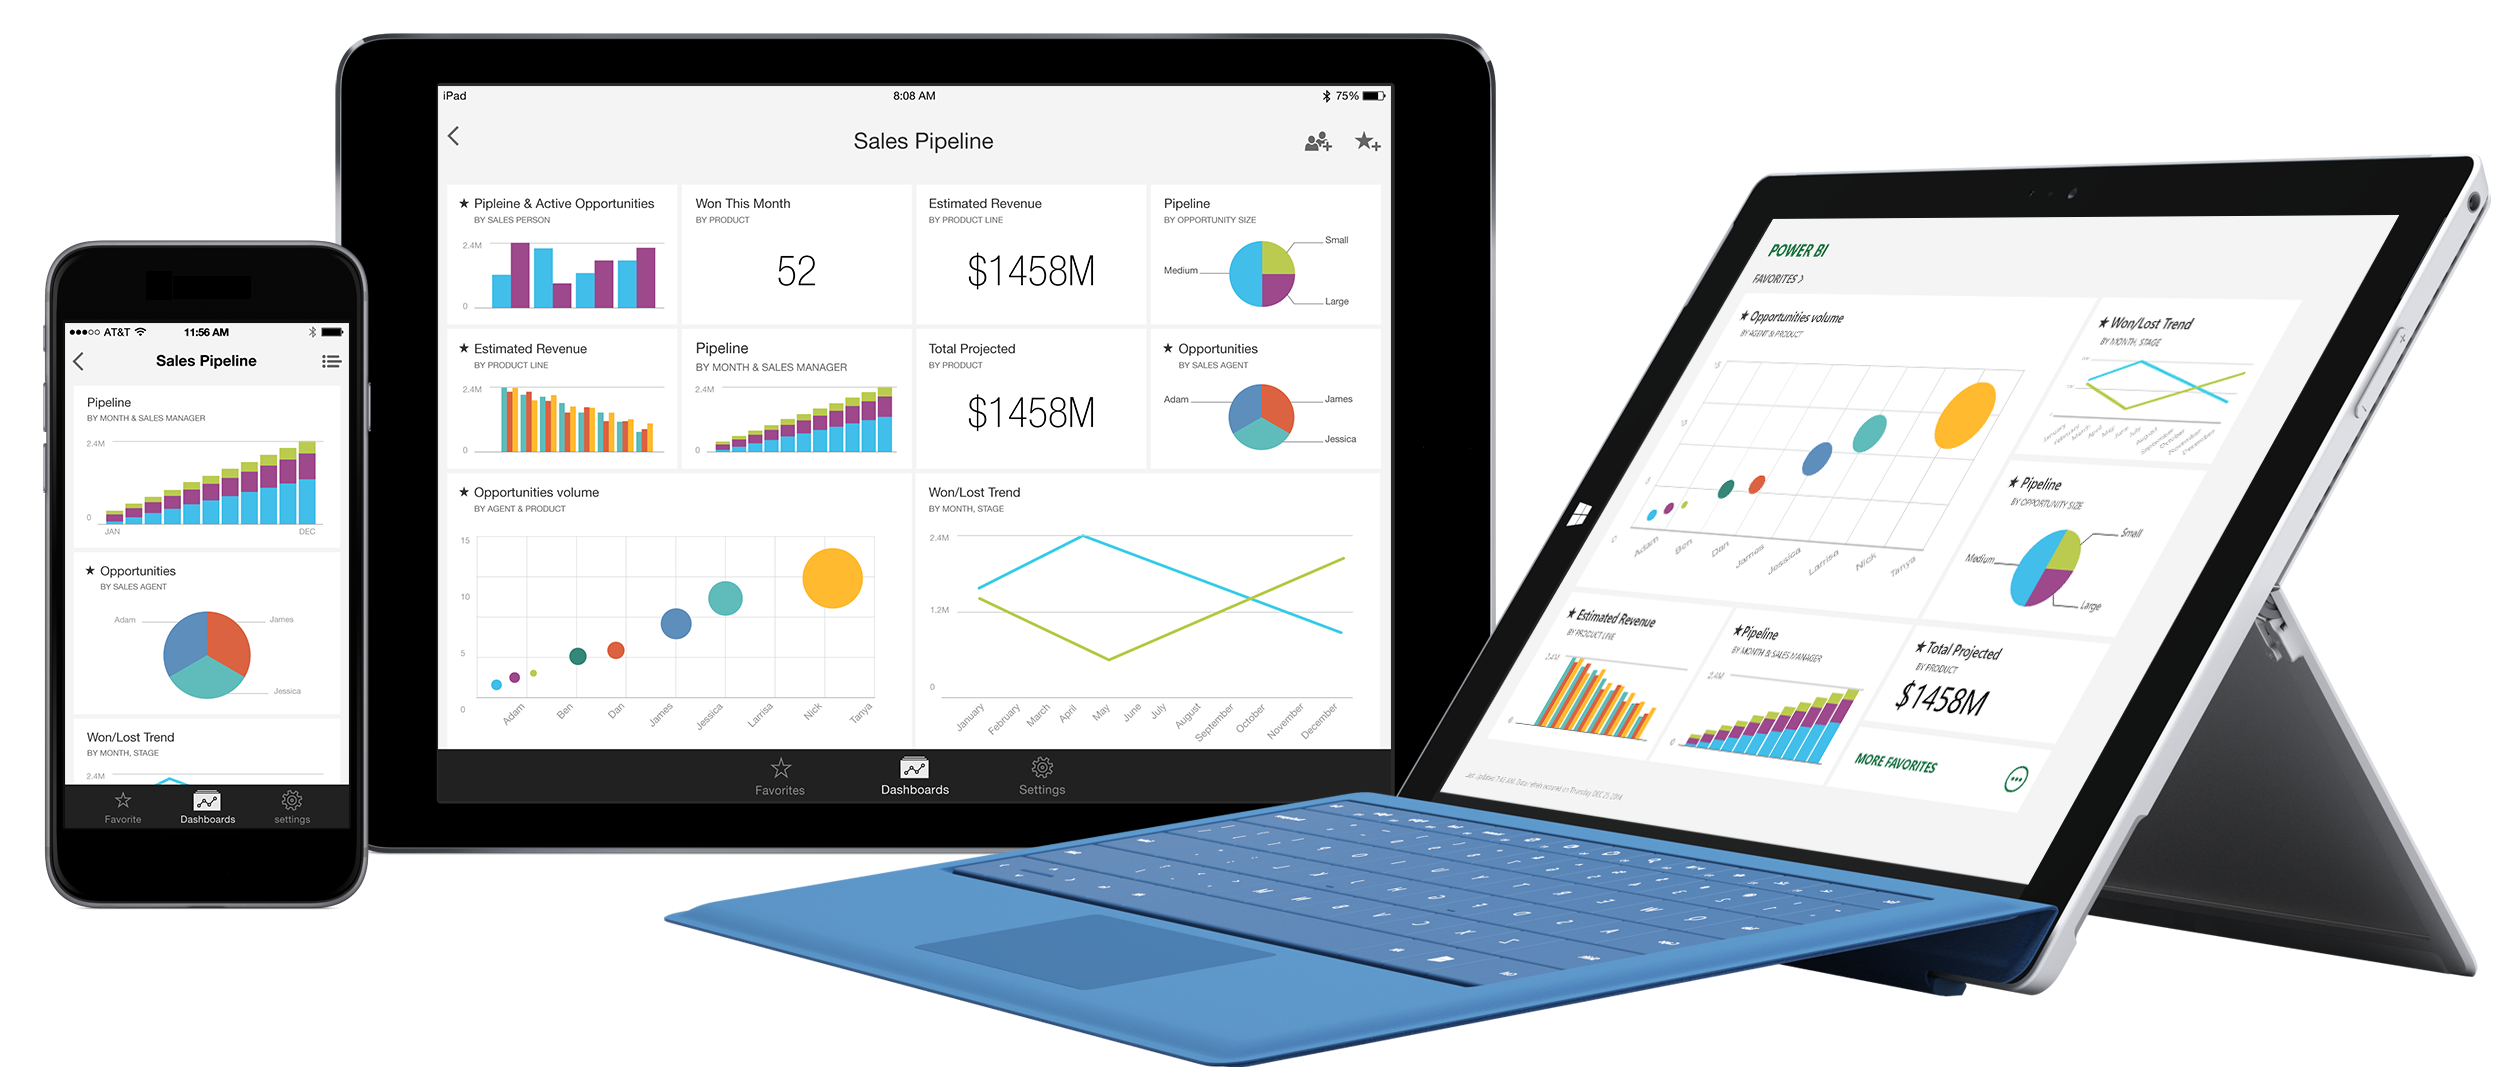 7 Microsoft Power Bi Icon Images